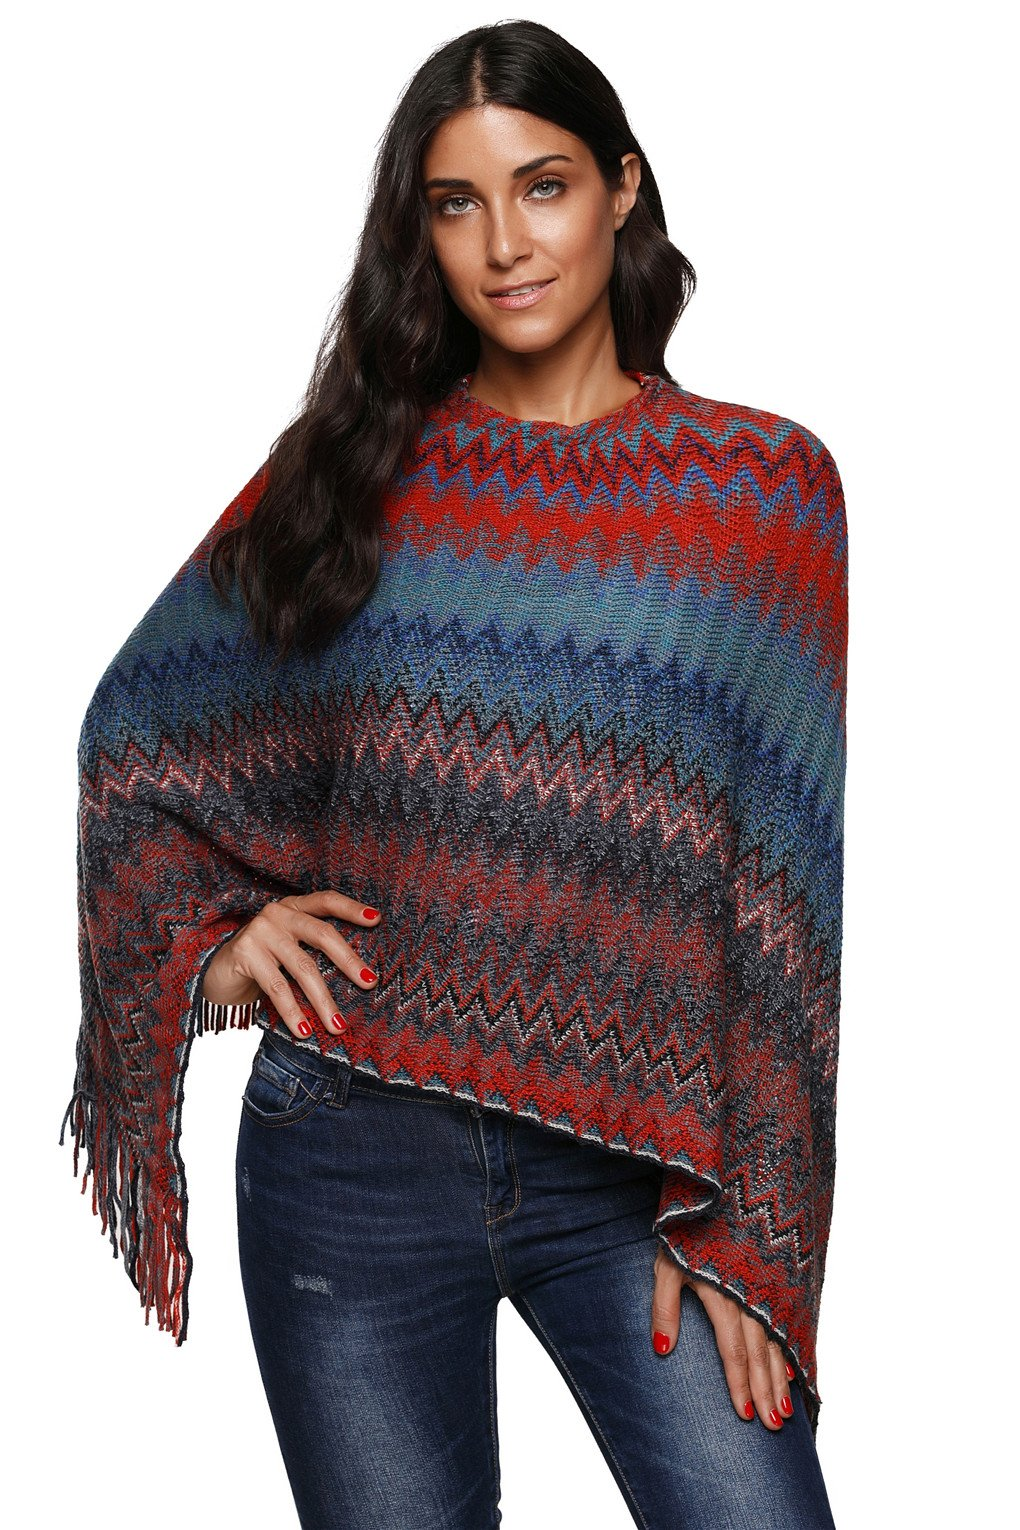 Knit Poncho Pattern With Sleeve - 1000 Free Patterns